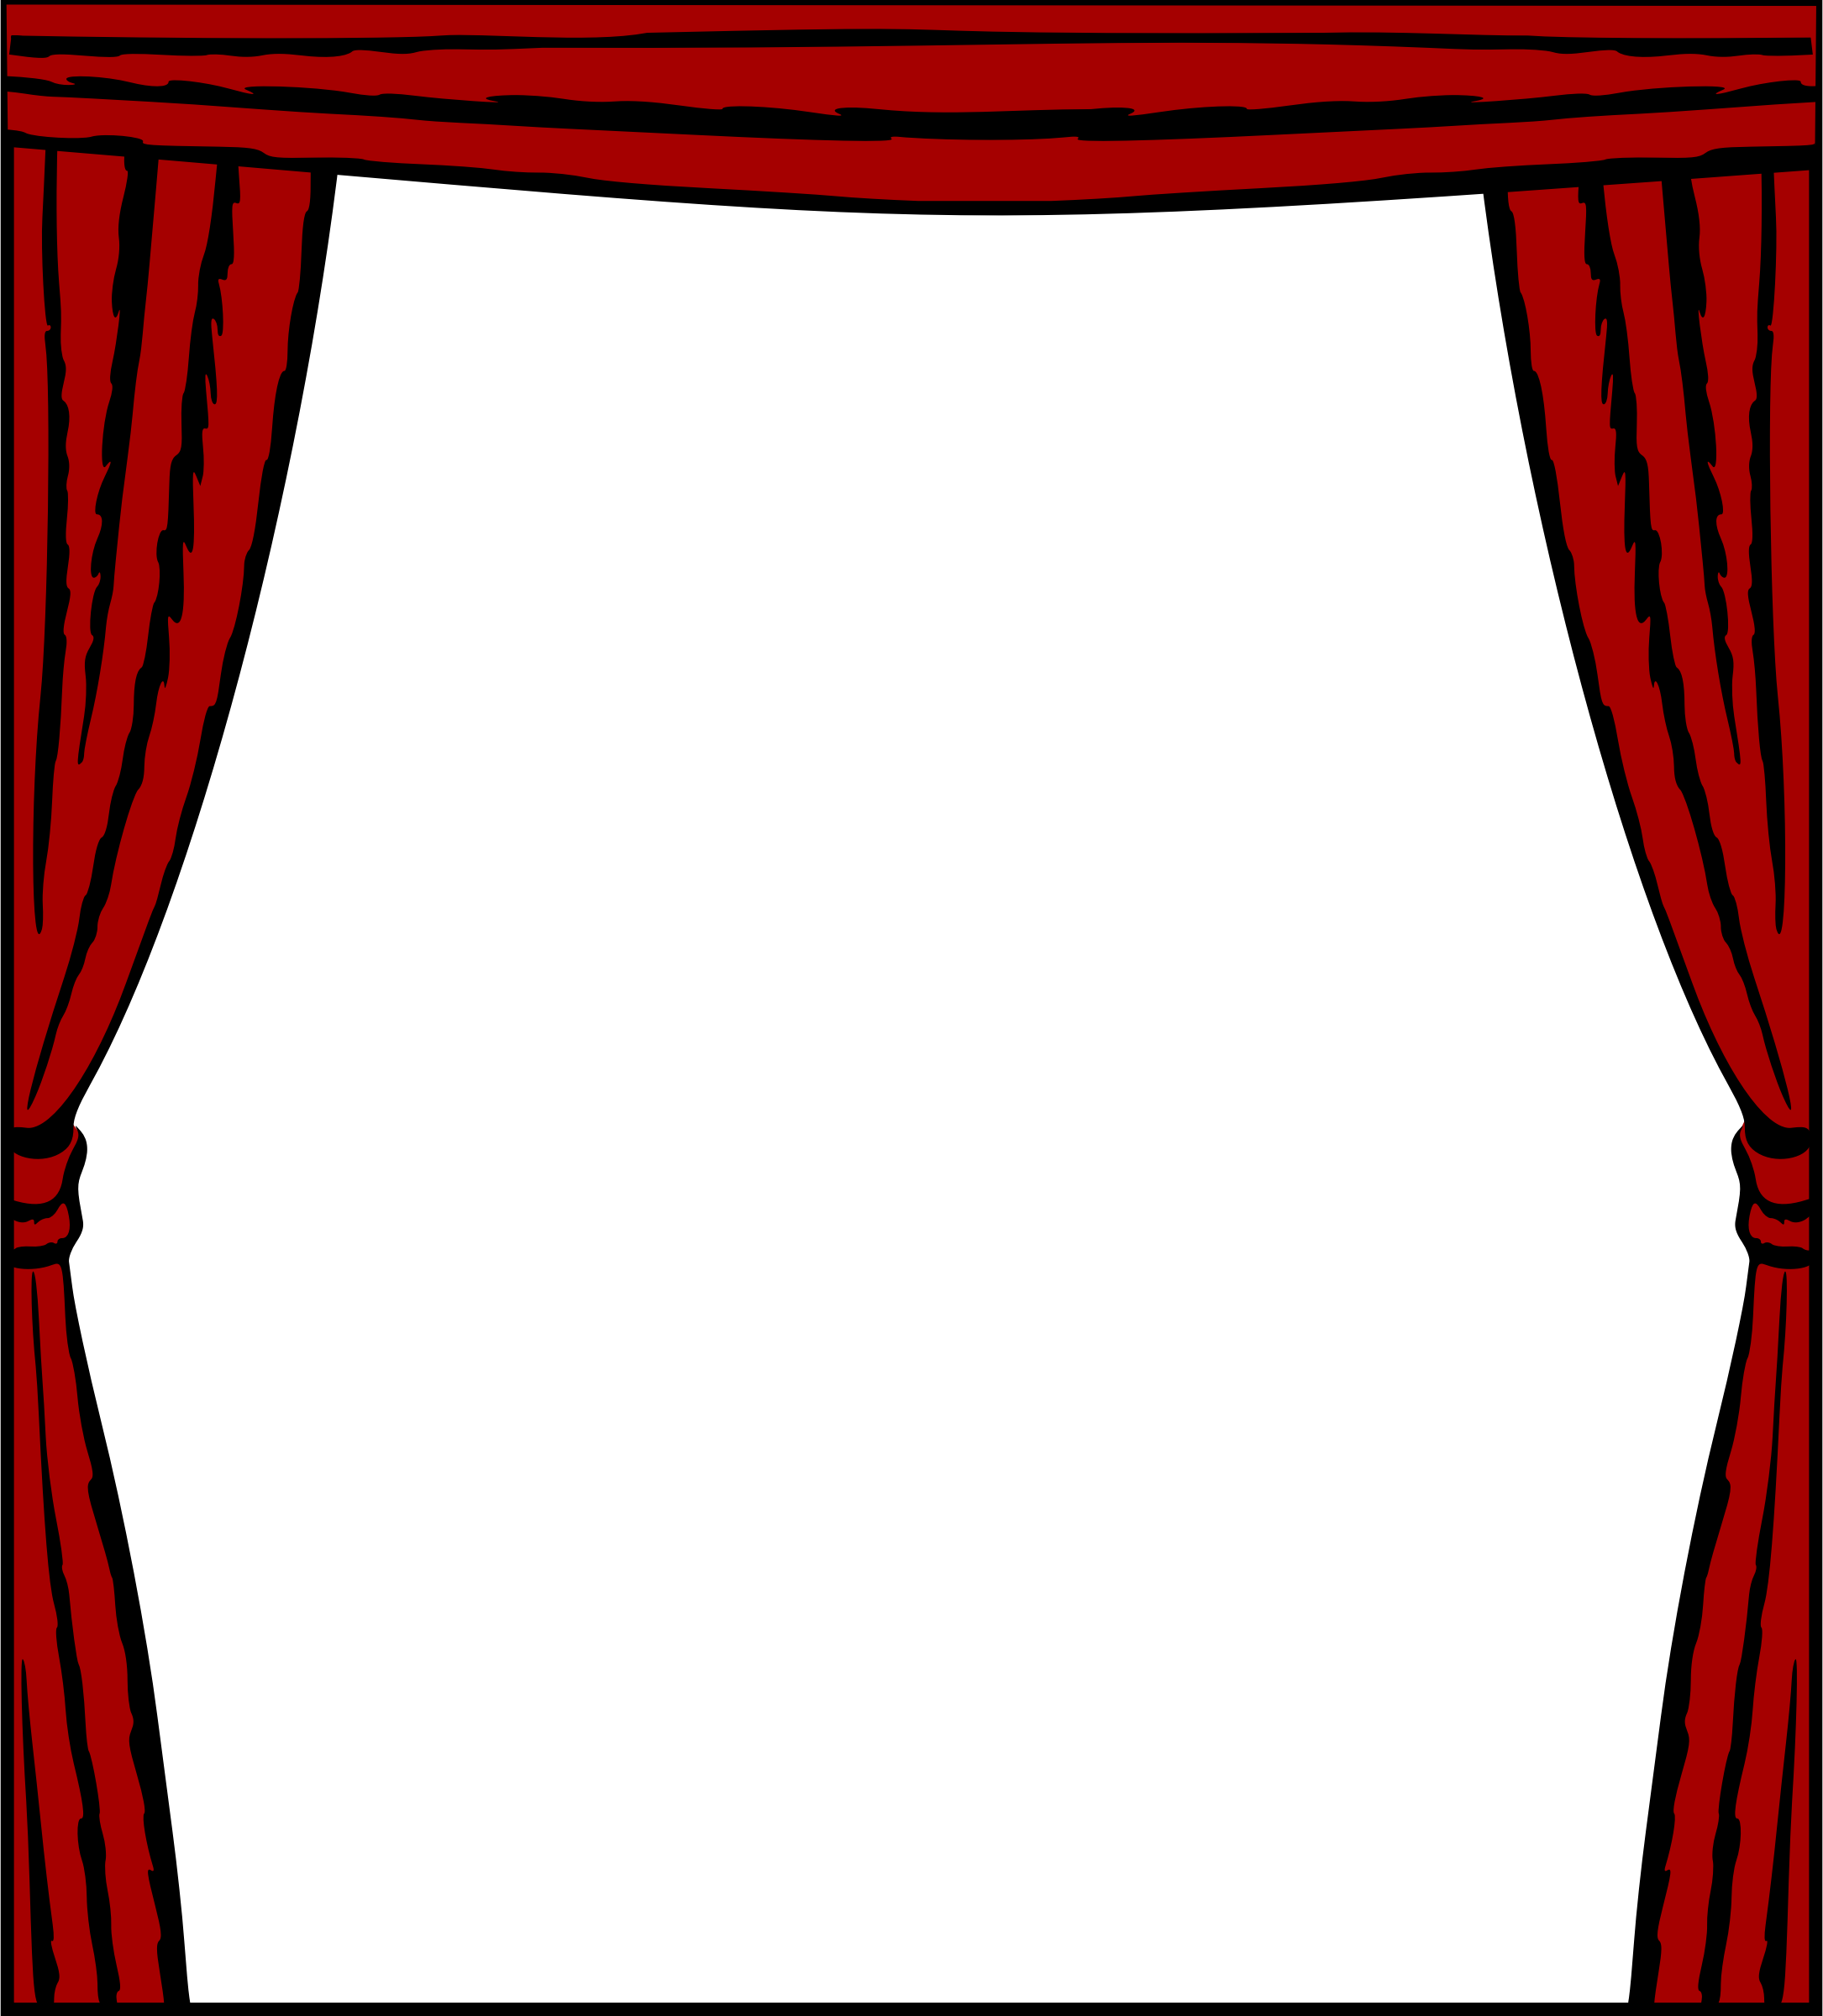 Curtain frame icons png. Curtains clipart big red clip art freeuse stock